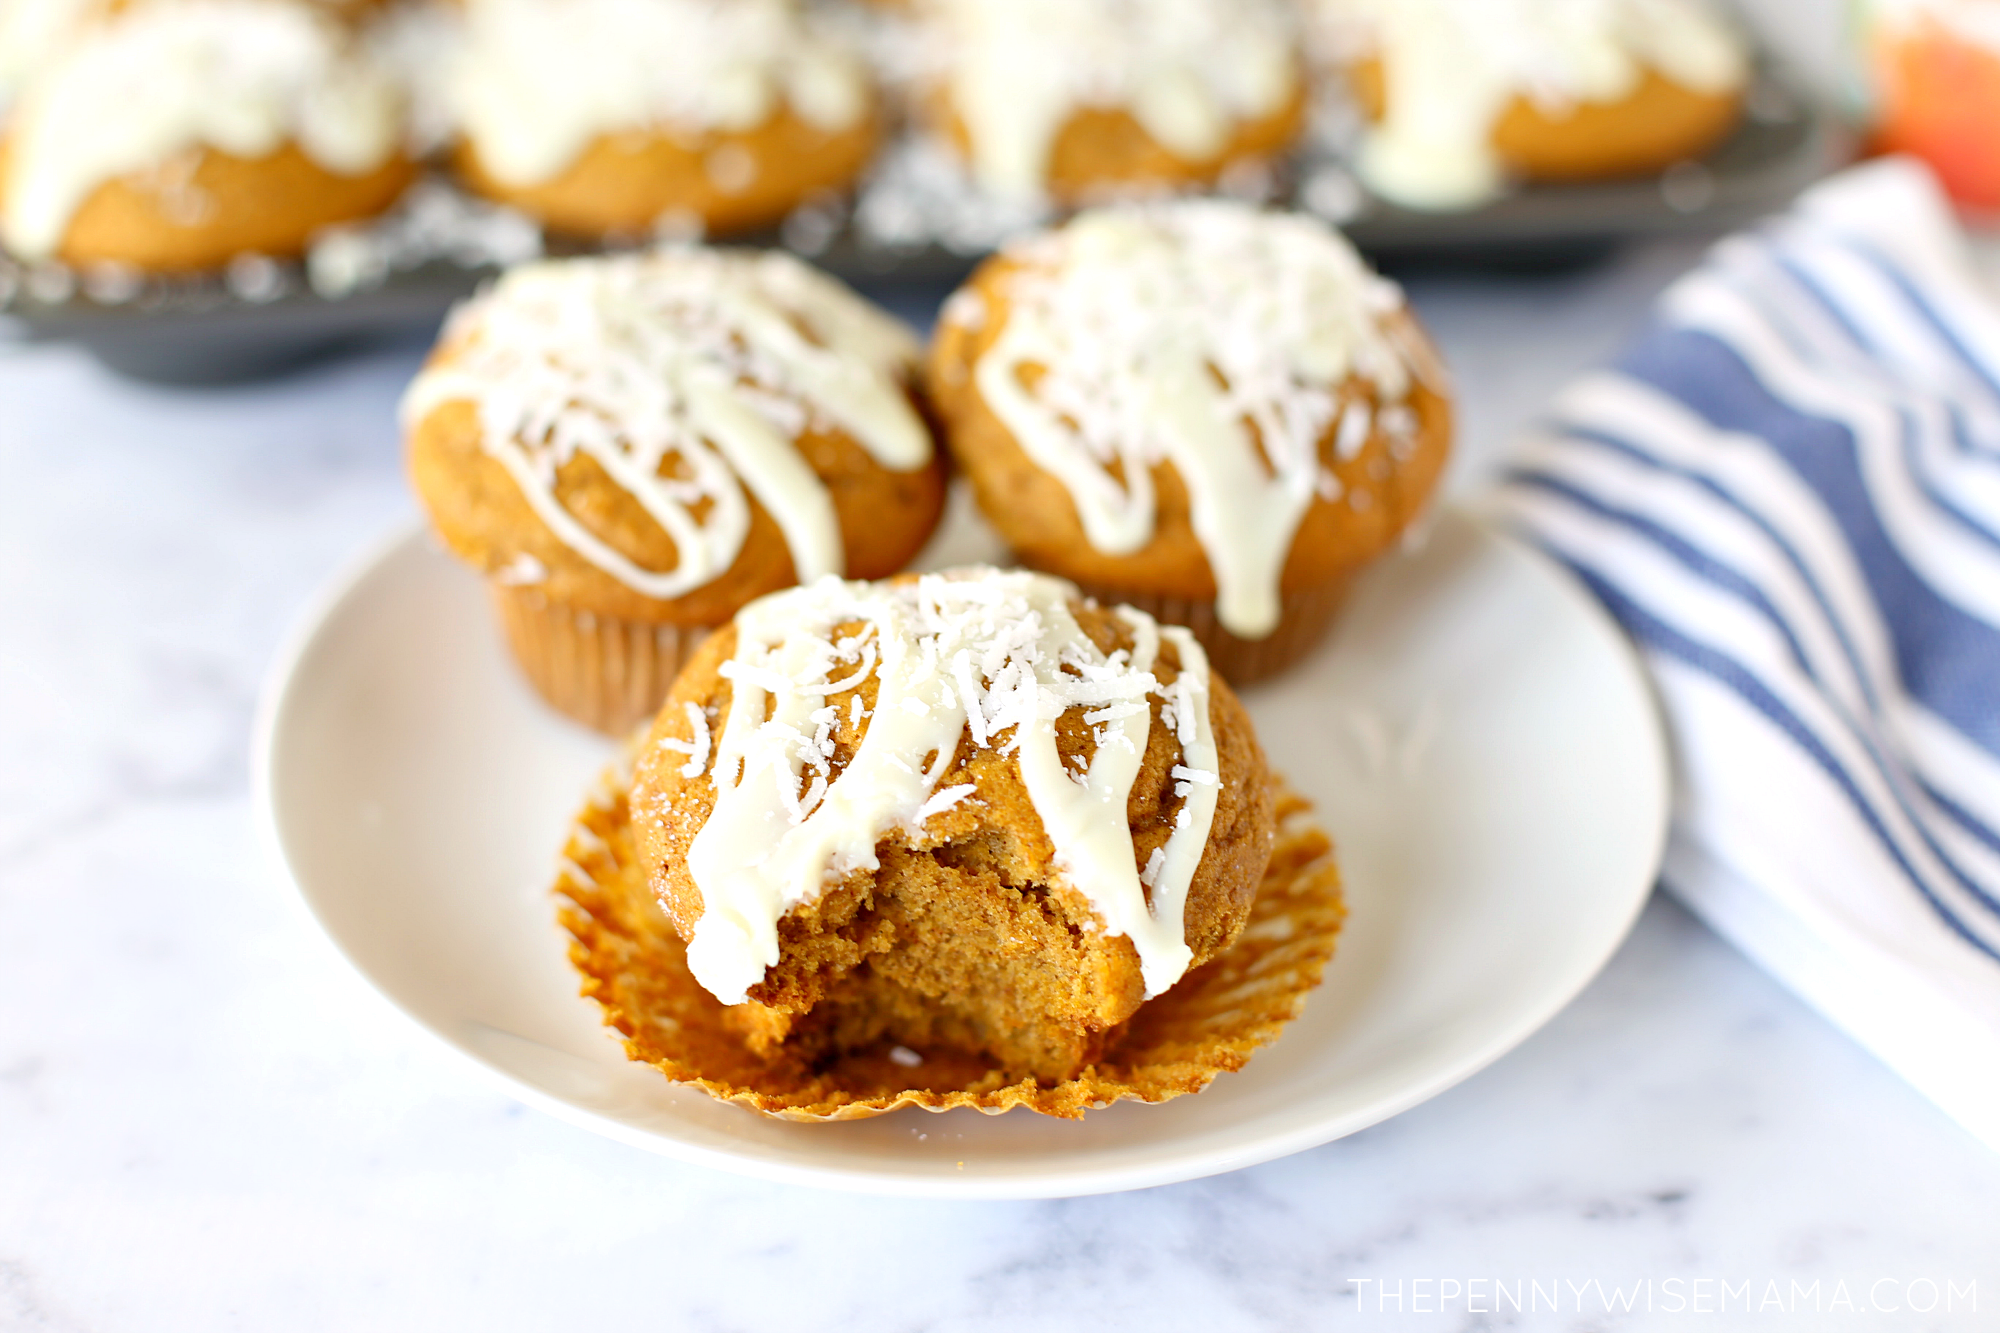 Delicious Pumpkin Muffins topped with white chocolate glaze and shredded coconut